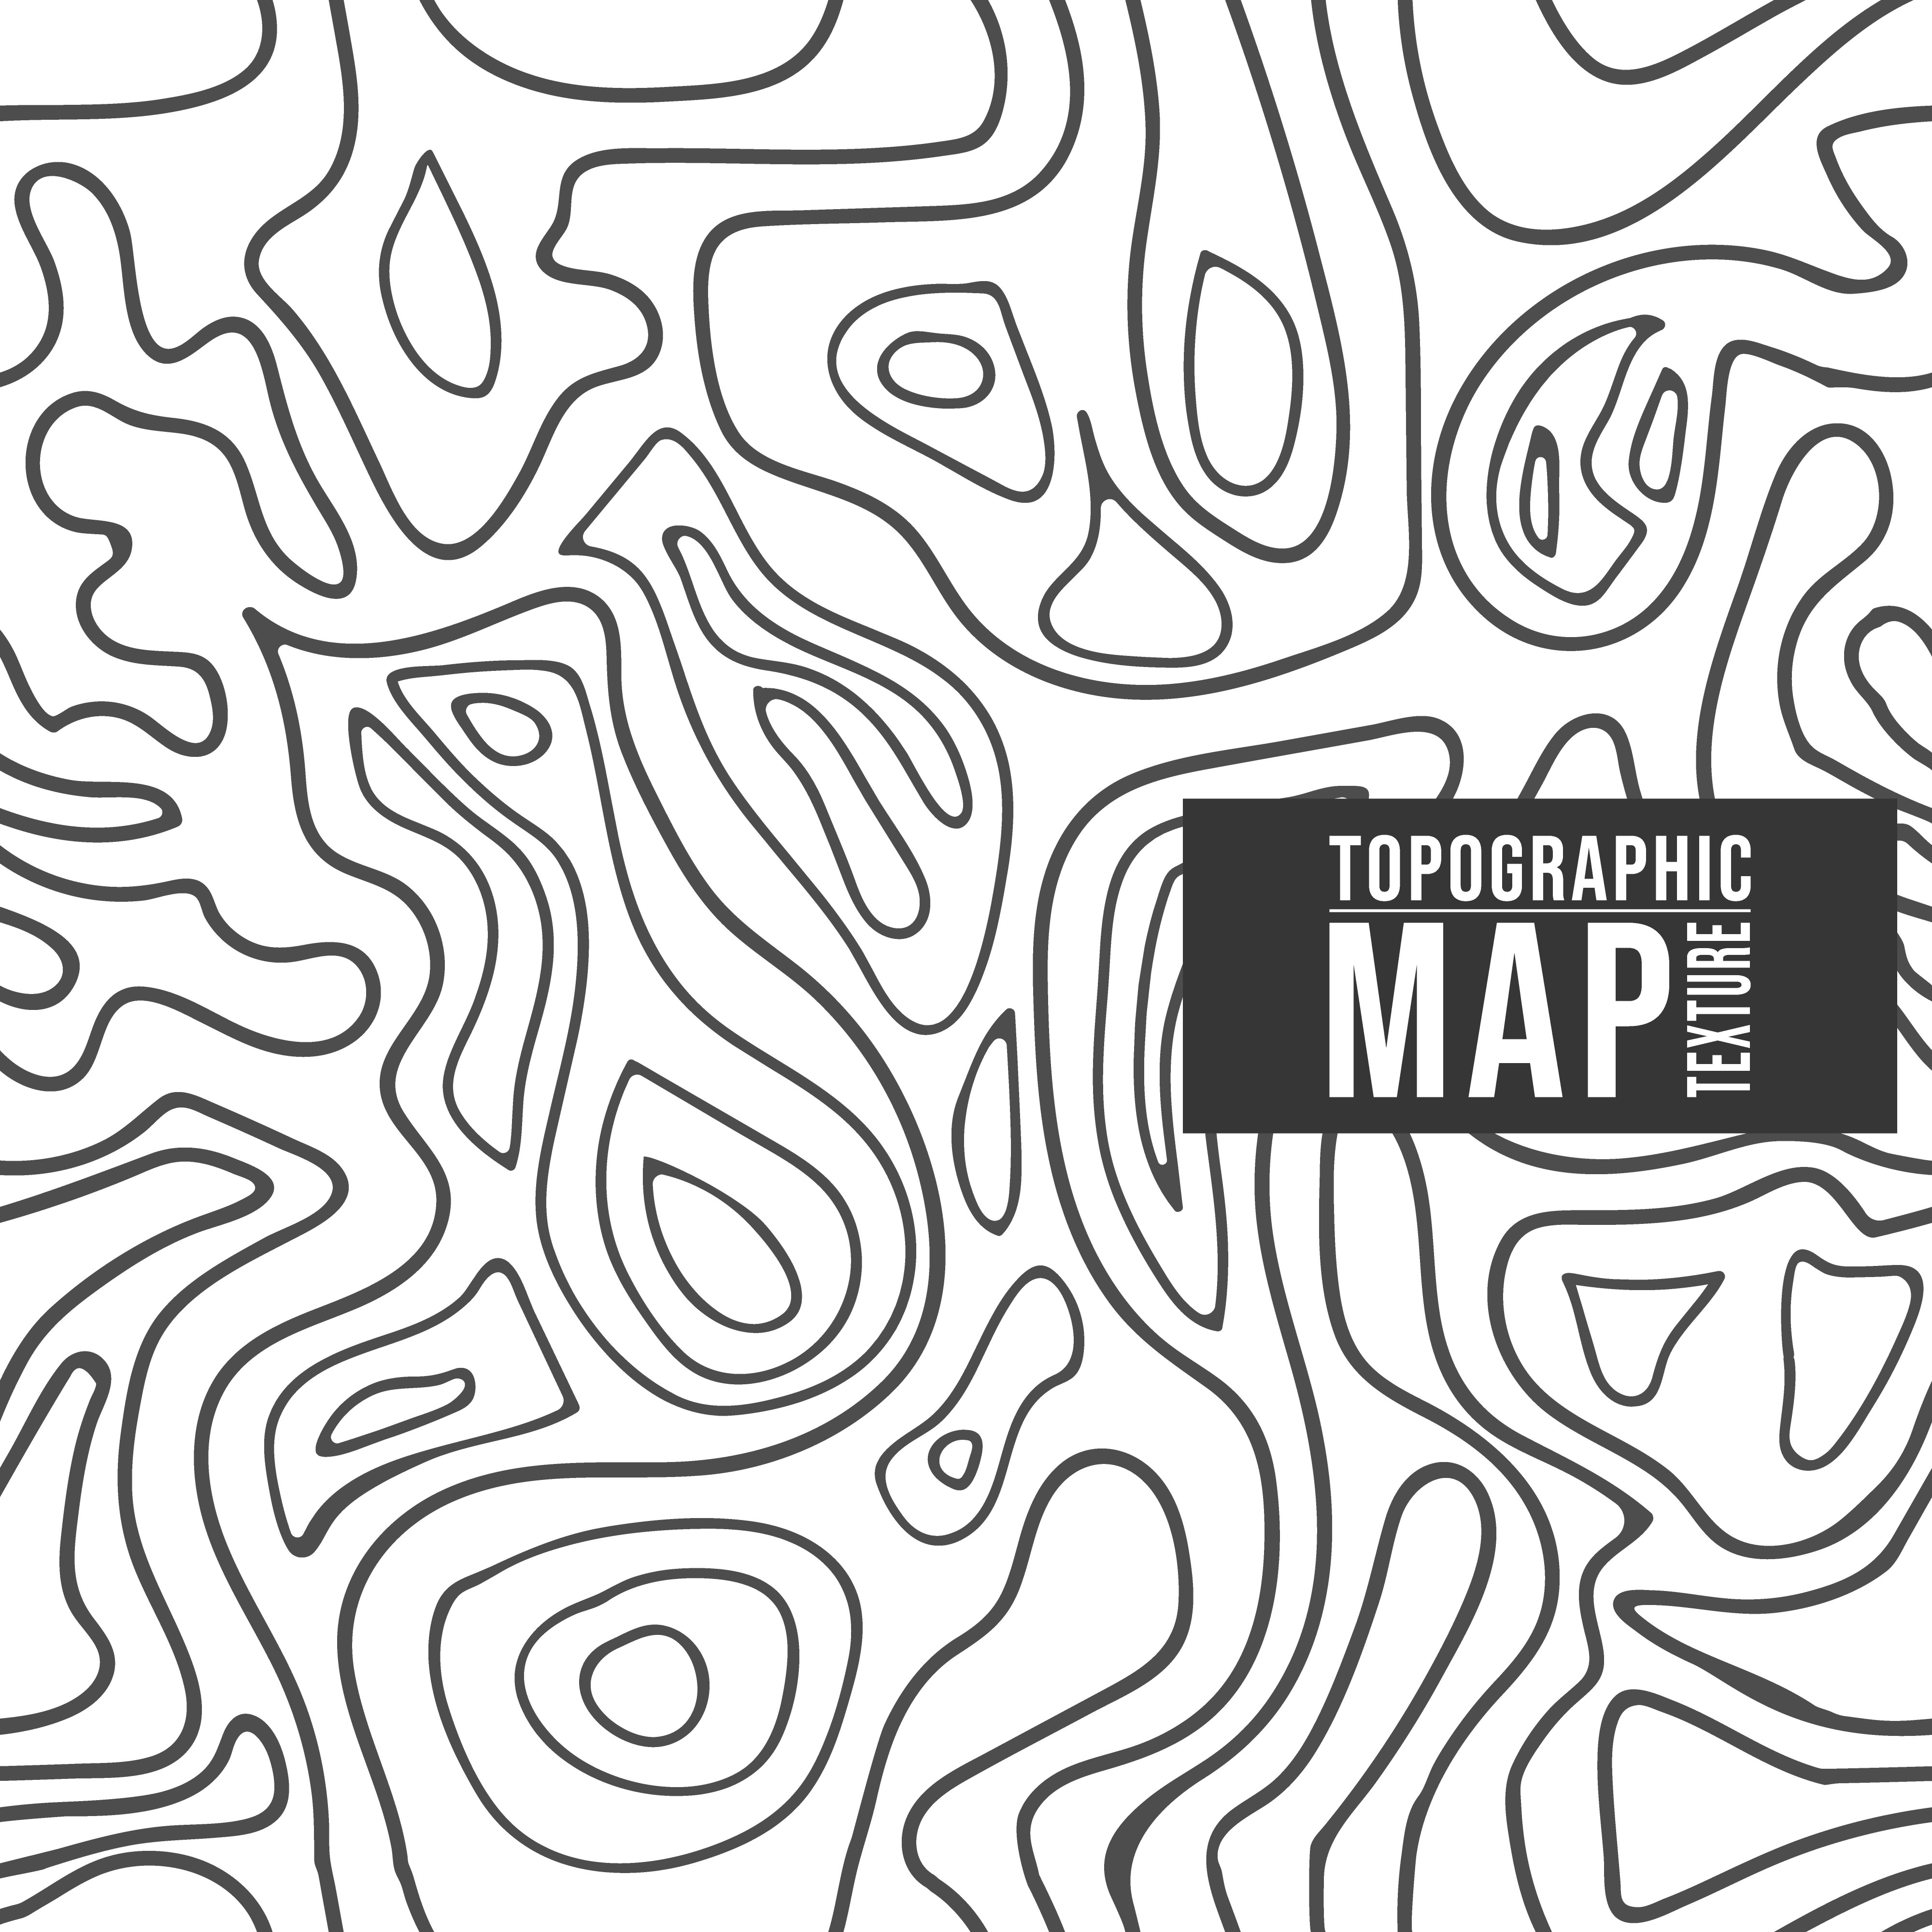 Topographic Map Pattern Seamless Background With Contour